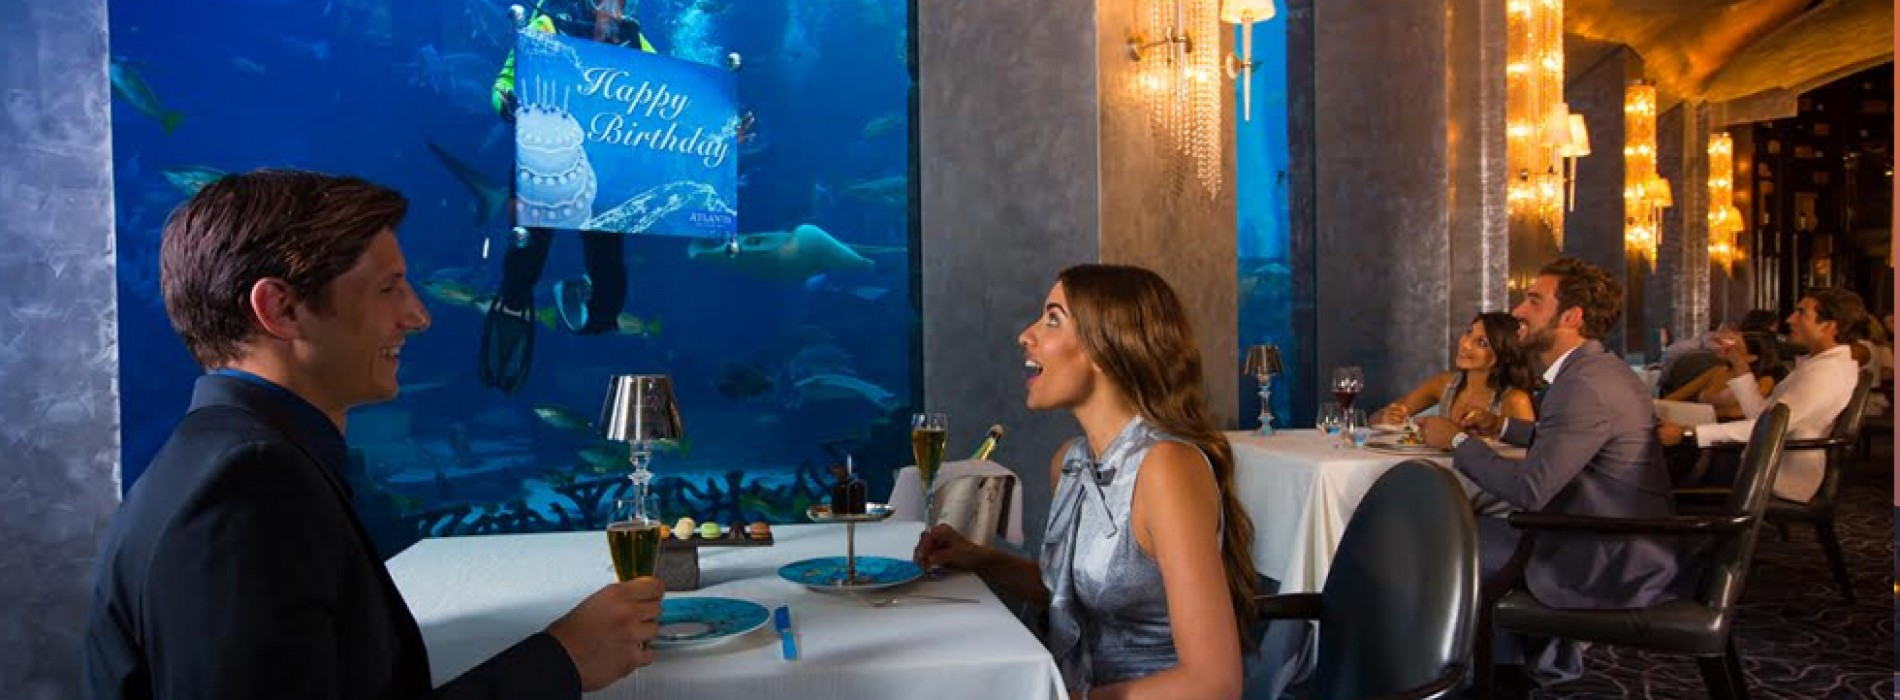 Experience global culinary delights at Atlantis, The Palm with your staycation this summer